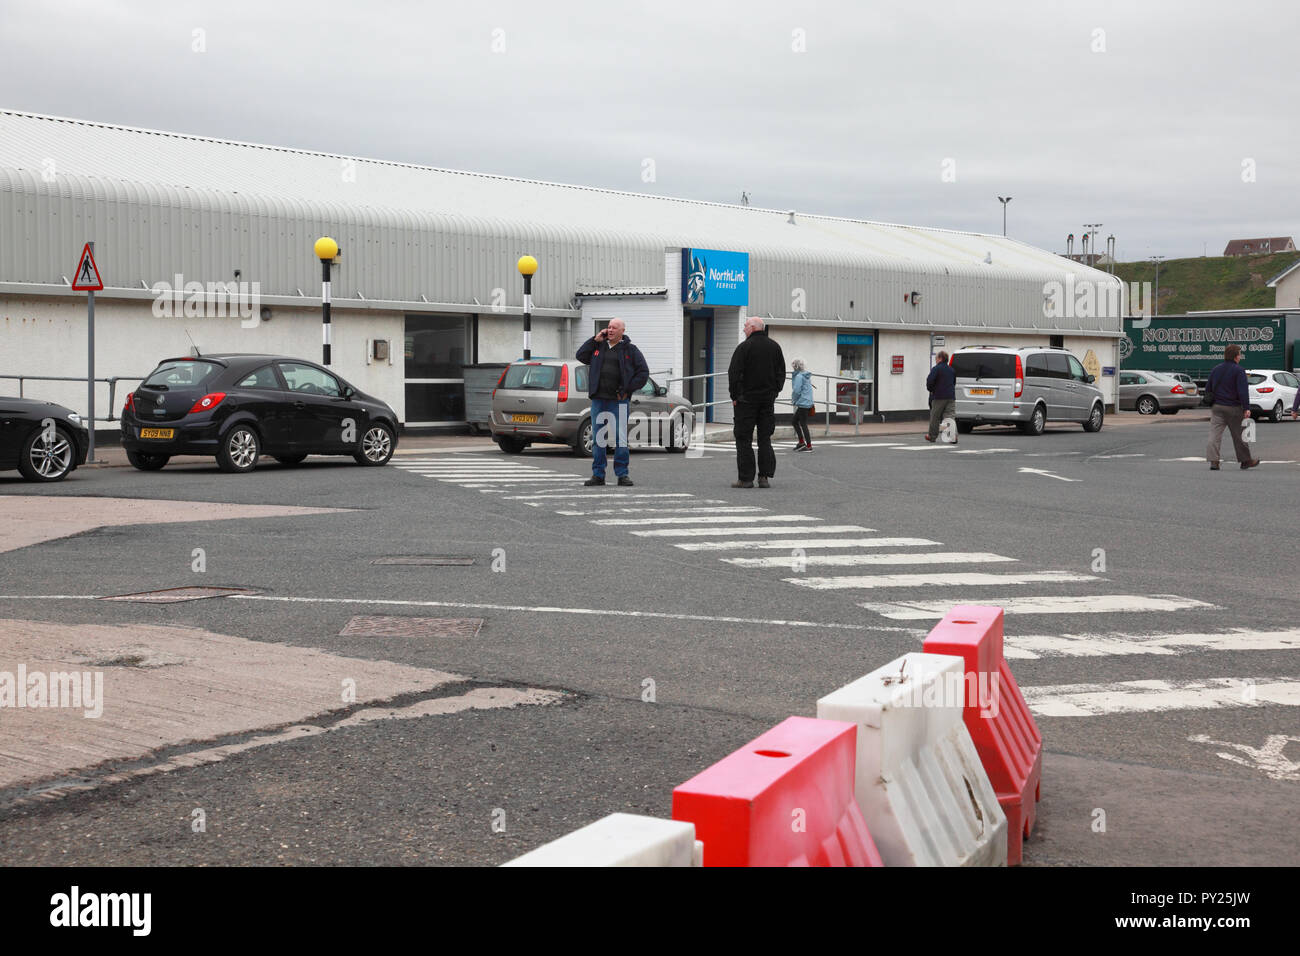 The café and terminal area at the harbour at Scrabster for passengers waiting to board the NorthLink car ferry to Orkney - Stock Image